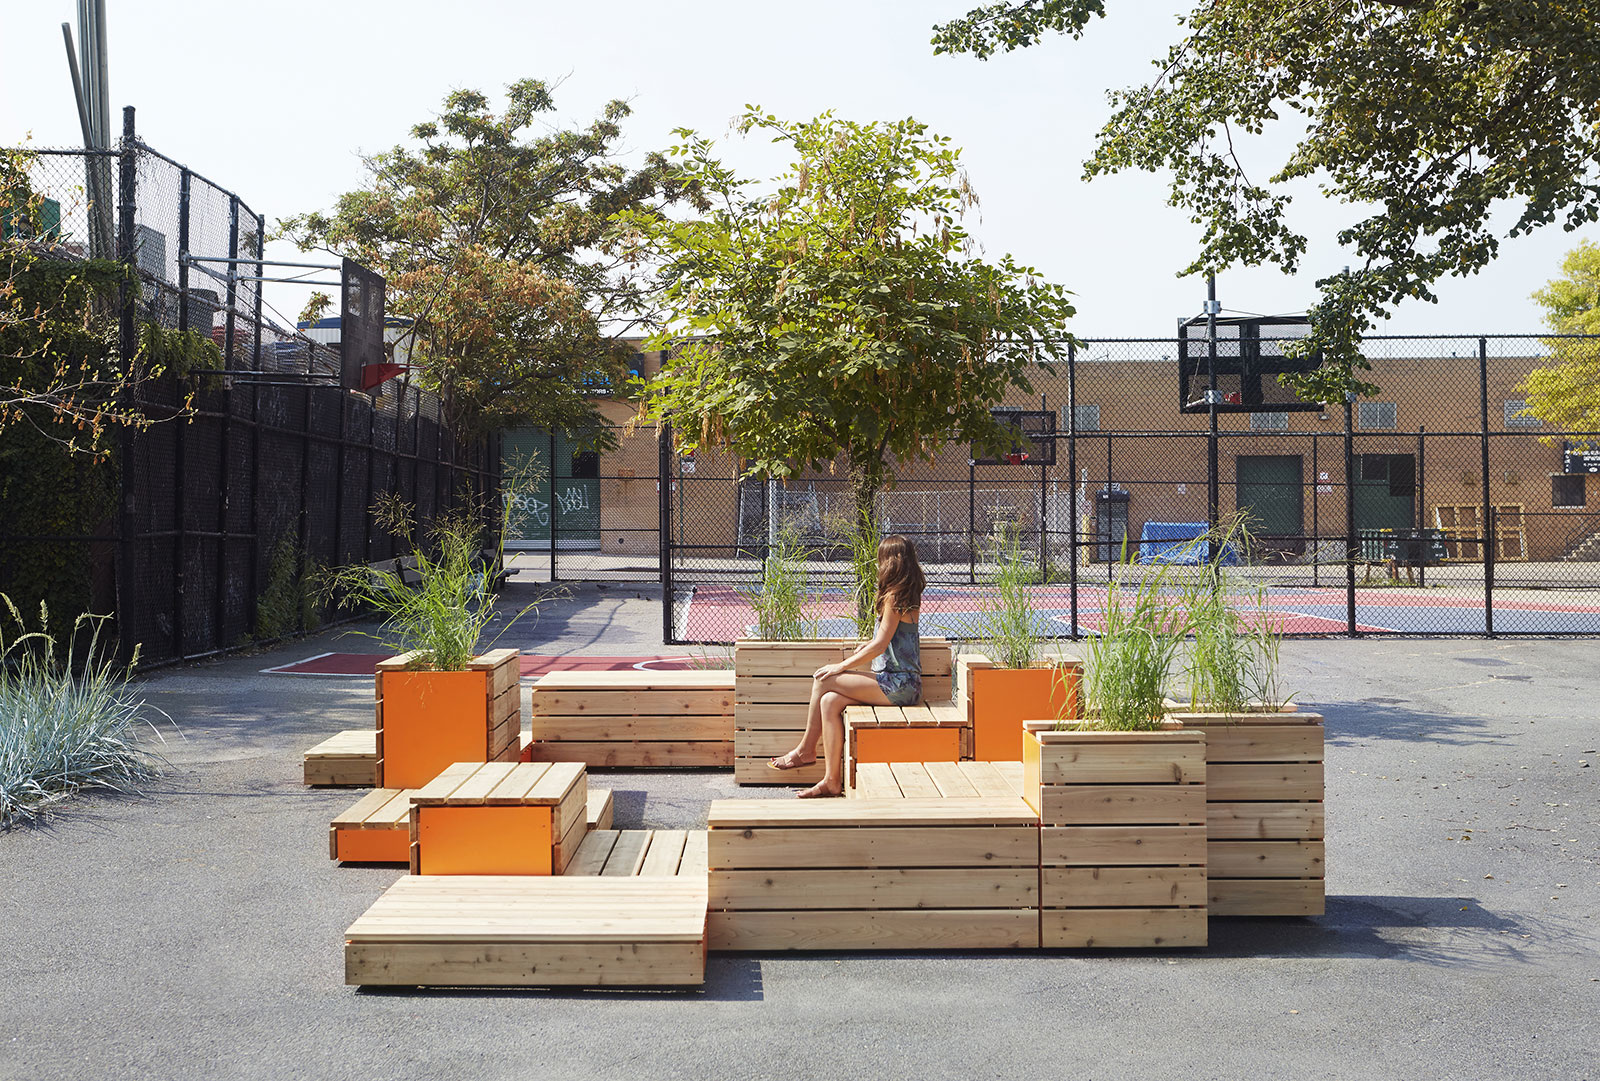 Untitled Benches Patios Planters In Arrangement For